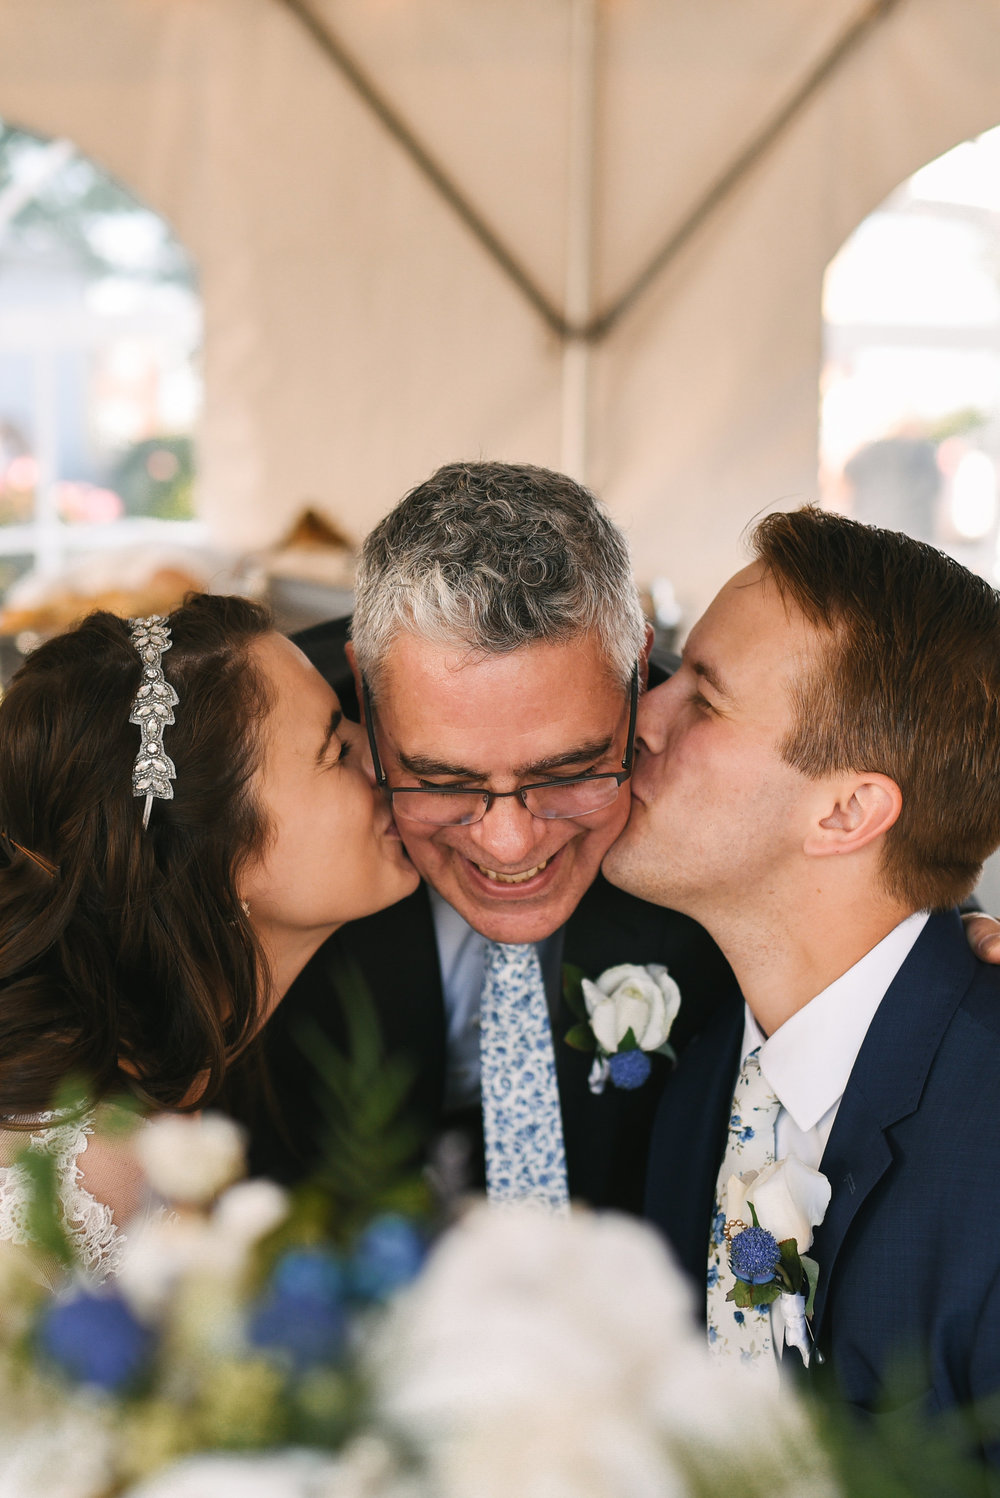 Baltimore, Canton, Modern, Outdoor Reception, Maryland Wedding Photographer, Romantic, Classic, Boston Street Pier Park, Bride and groom kissing father of the bride on the cheek